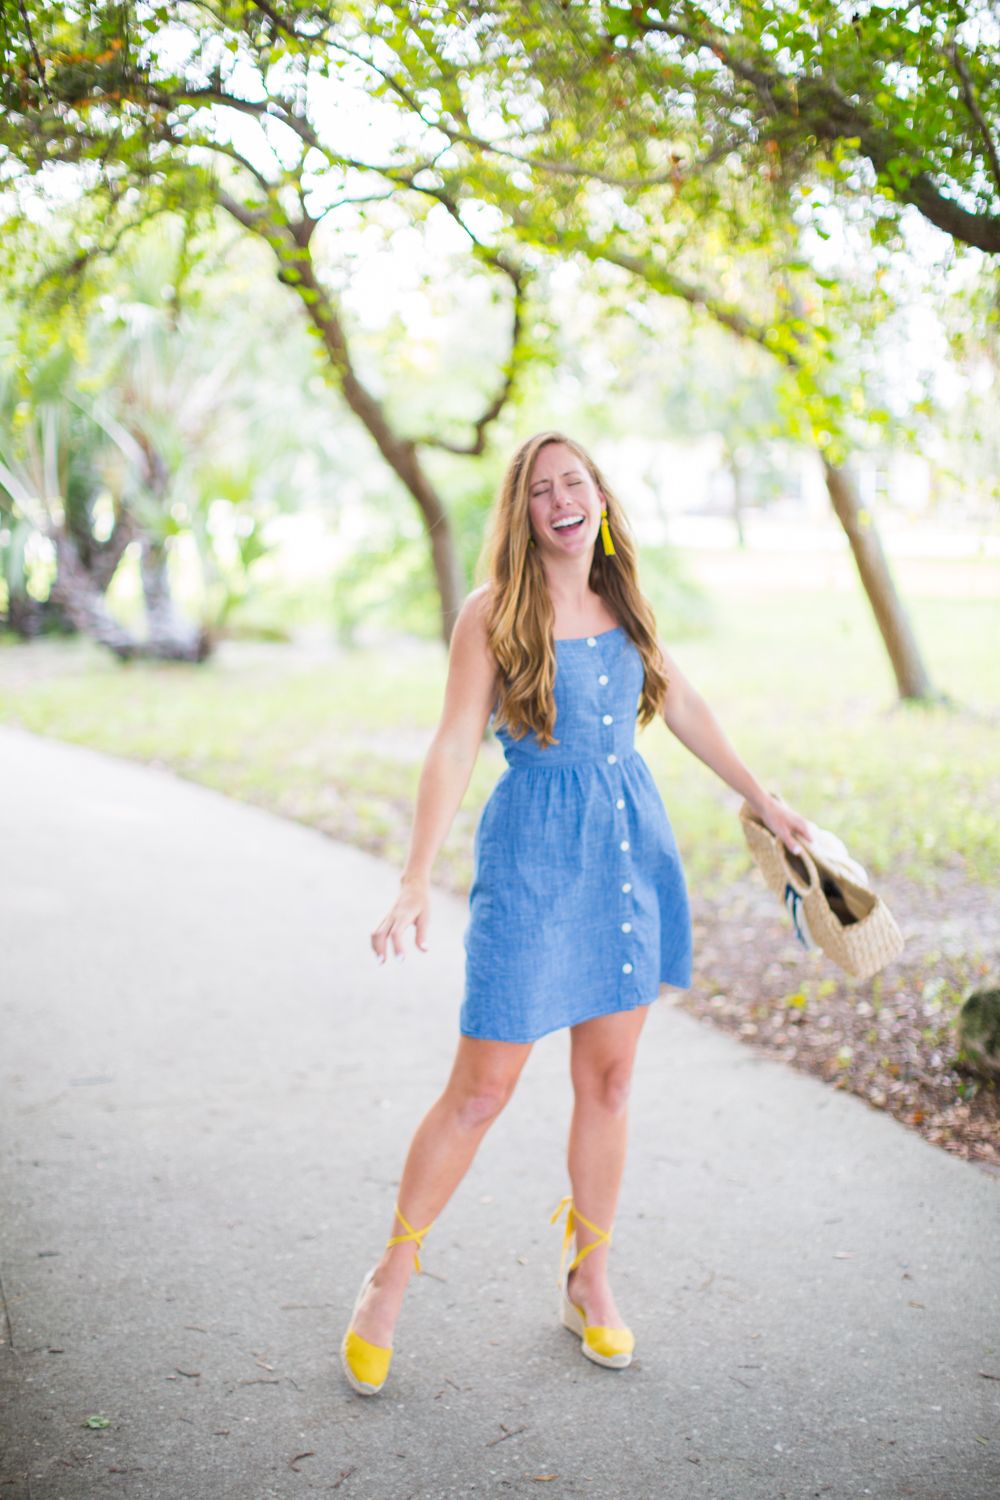 Affordable Chambray Button Up Dresses for Summer, J.Crew Button Up Dress - Sunshine Style, A Florida Fashion Blog